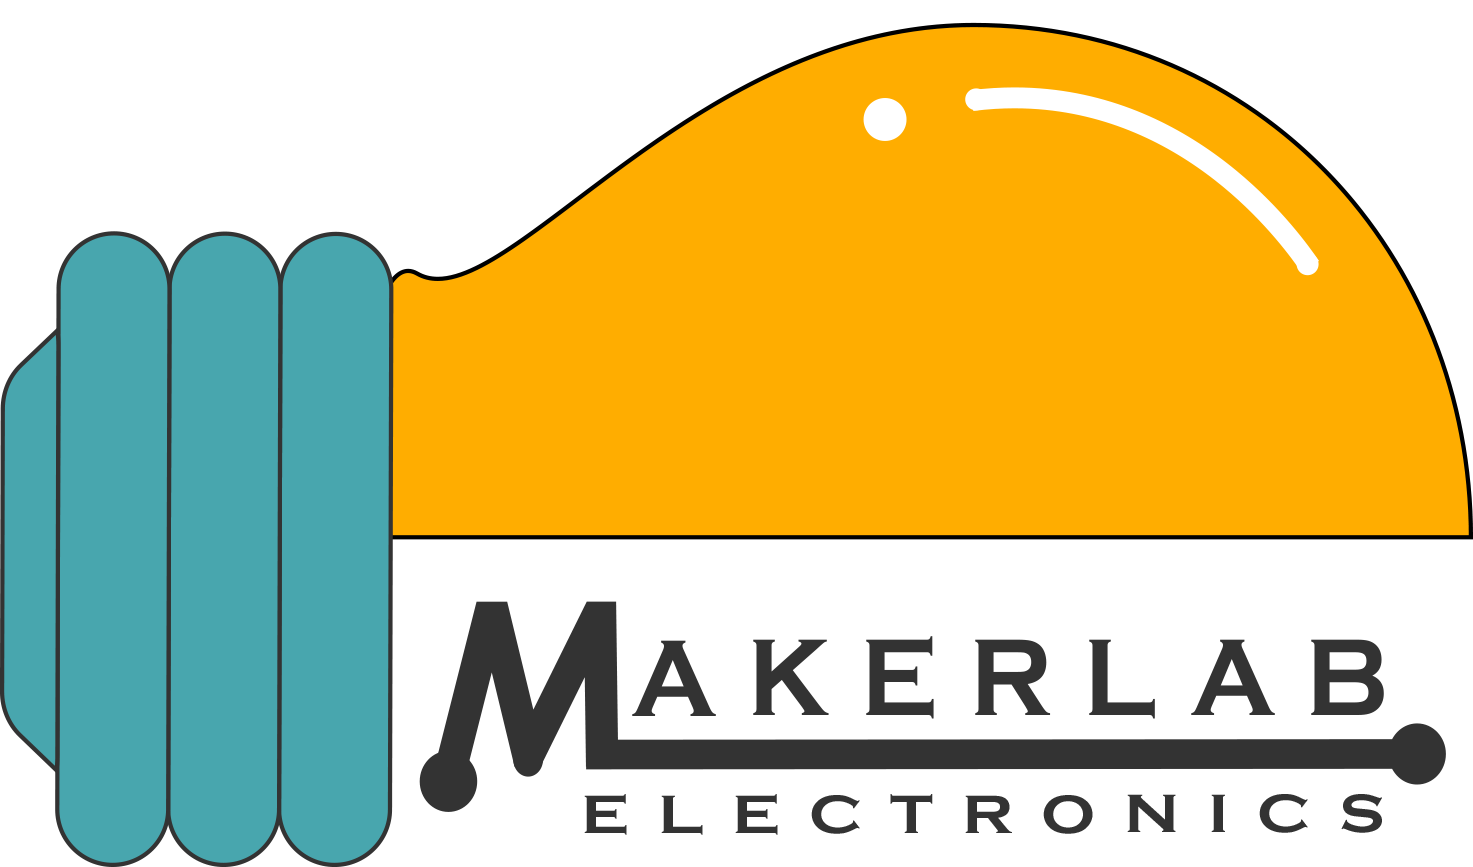 Makerlab Electronics